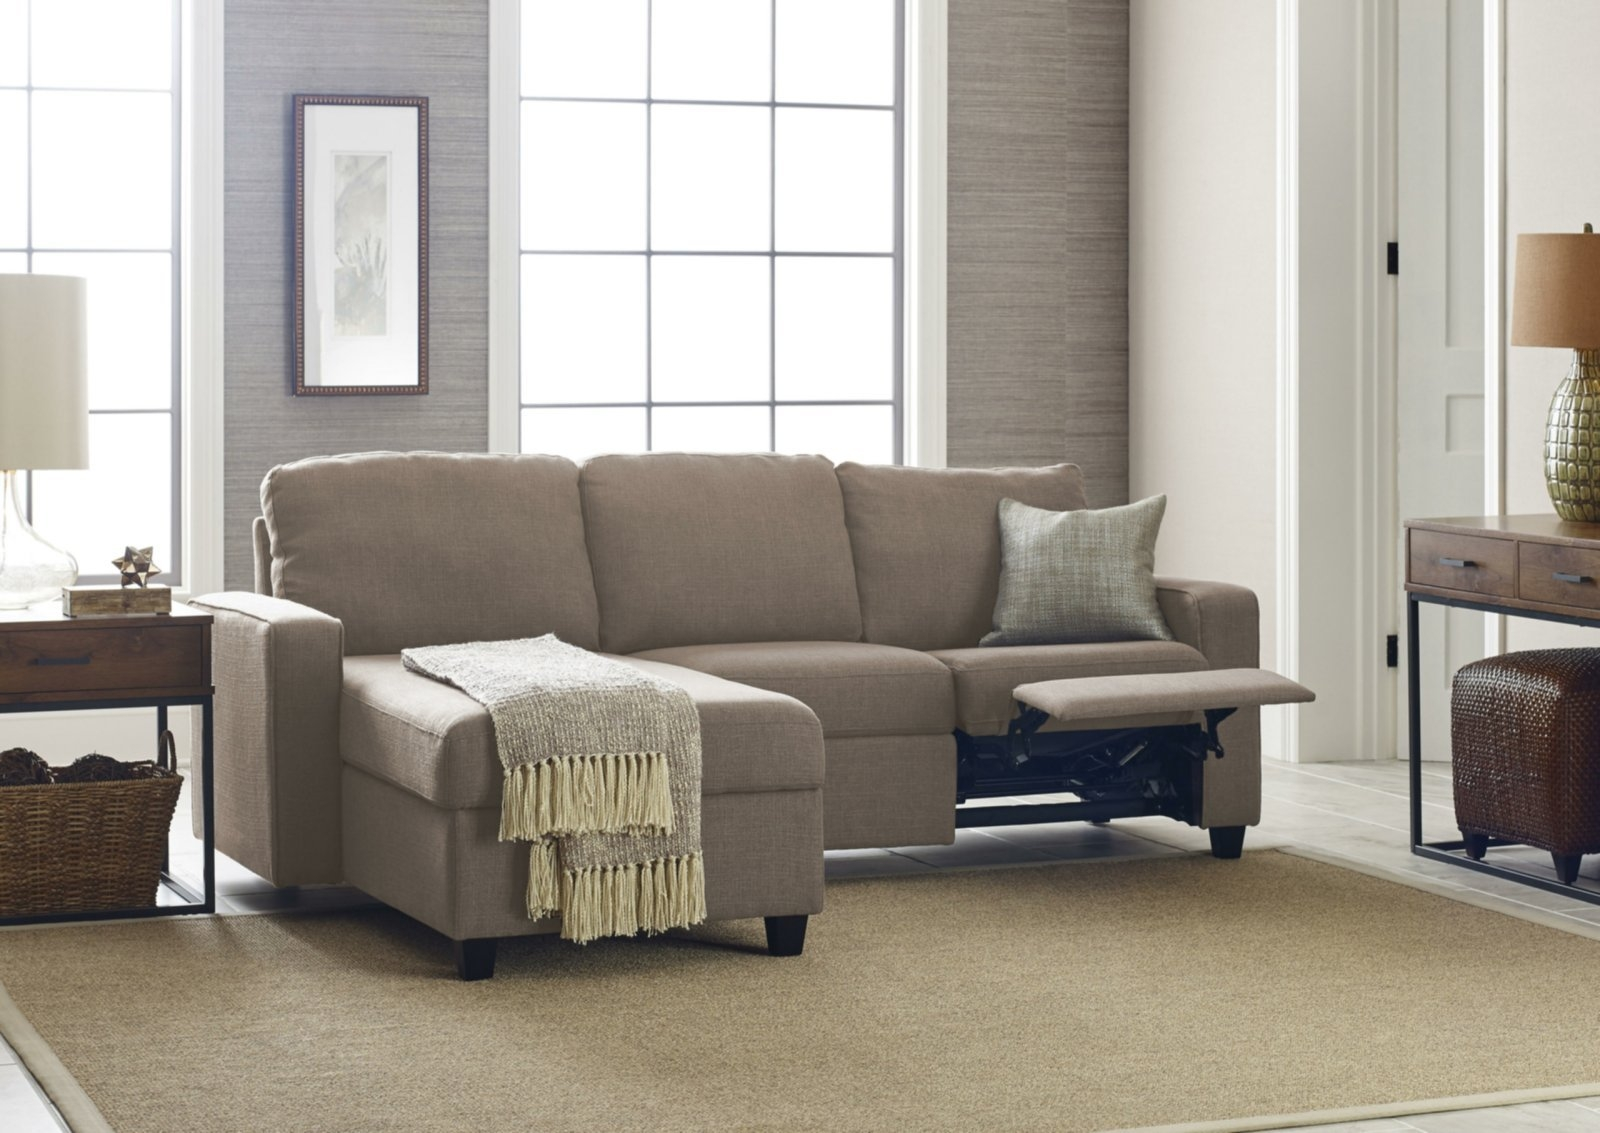 small sectional sofa with recliner visual hunt rh visualhunt com small sectional sofas with recliners and cup holders small sectional sofa with recliner and chaise